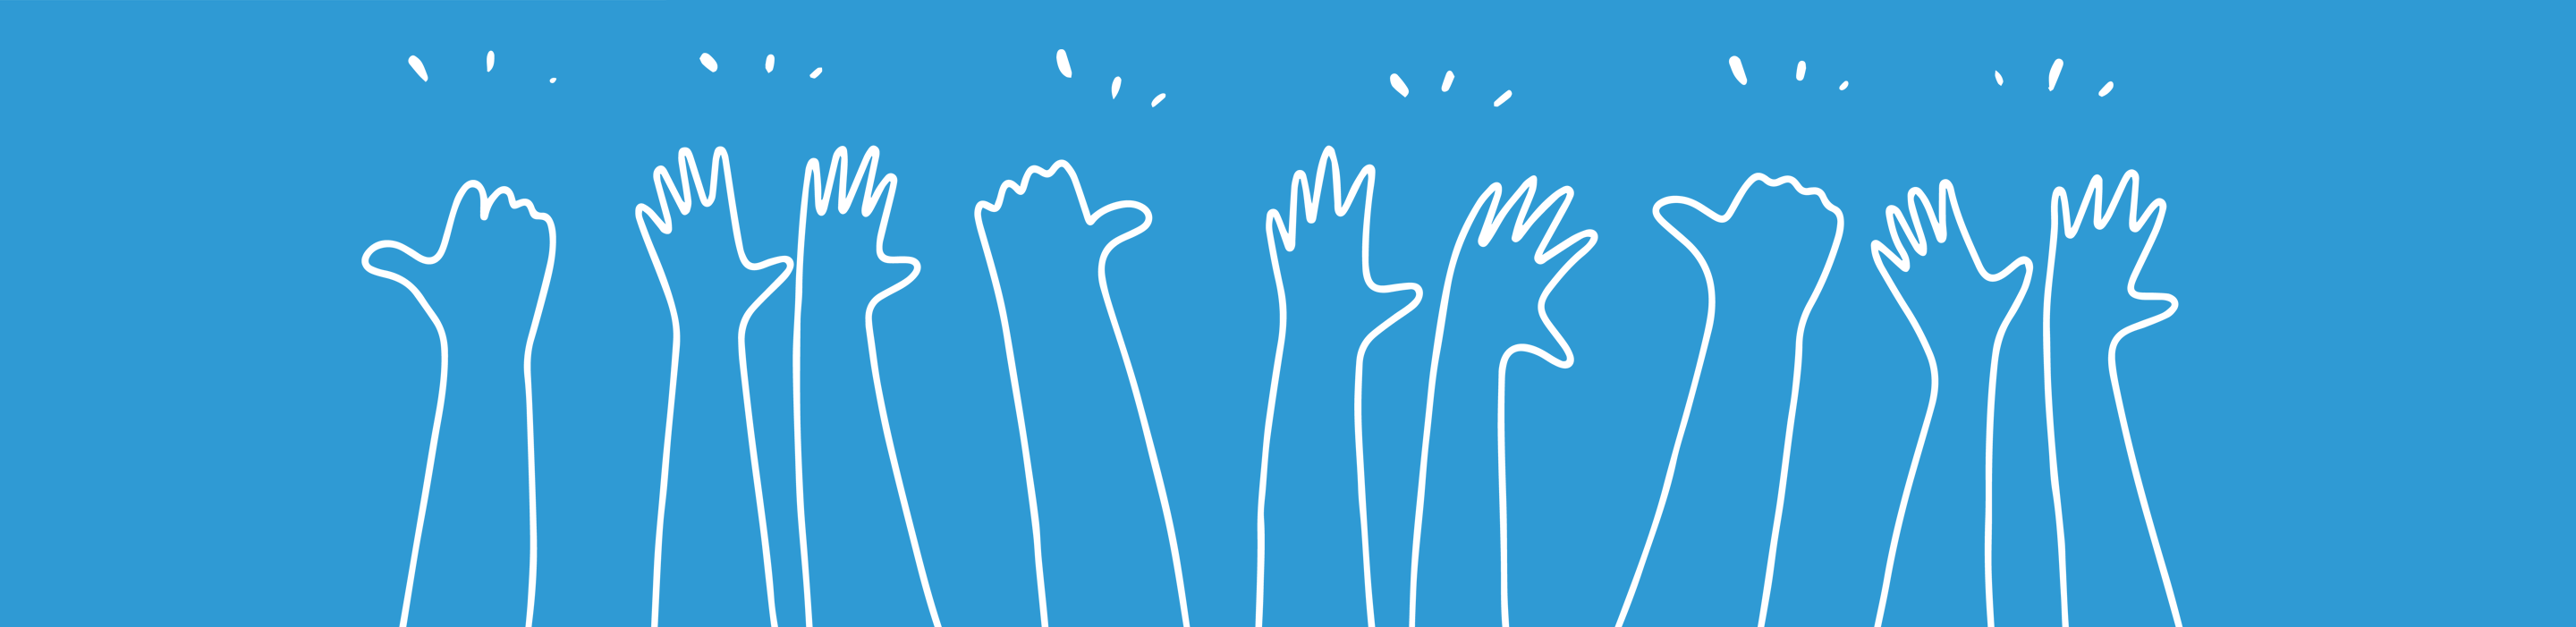 Conference logo hands in the air